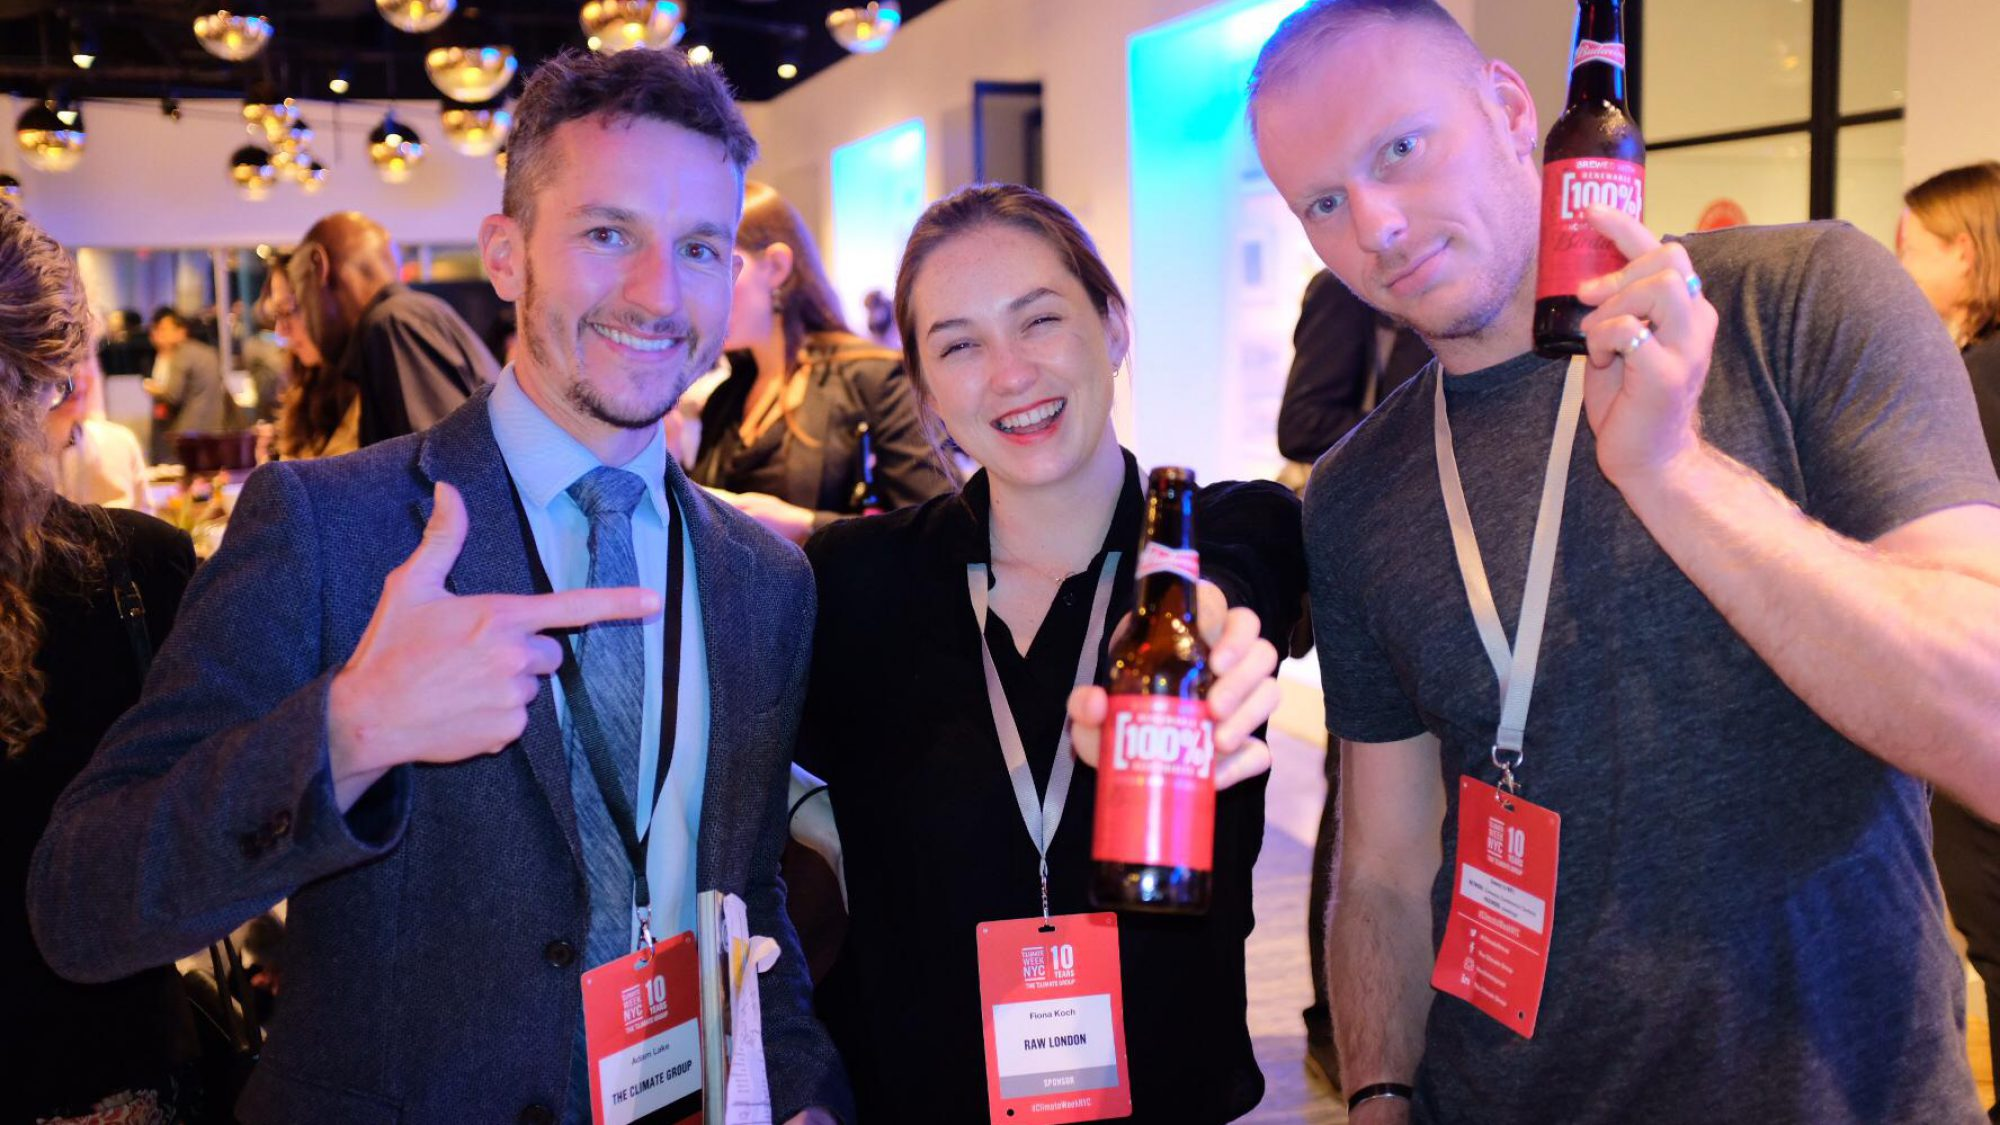 Raw London team showing off sustainable beers at Climate Week 2019